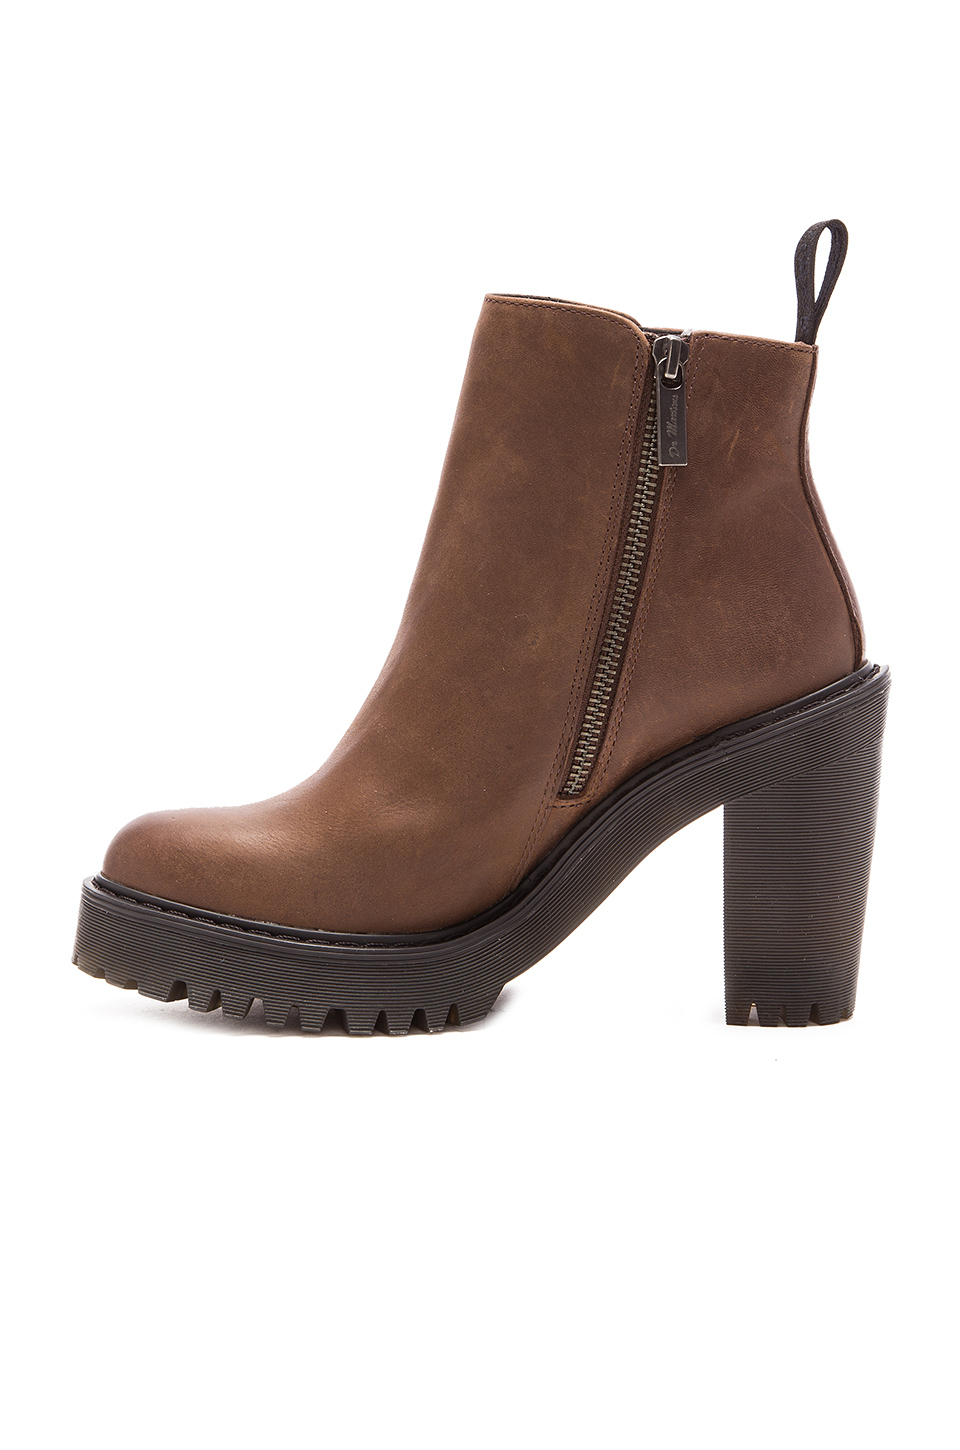 0b72e9b6a96c8 Lyst - Dr. Martens Magdalena Ankle Zip Boot in Brown